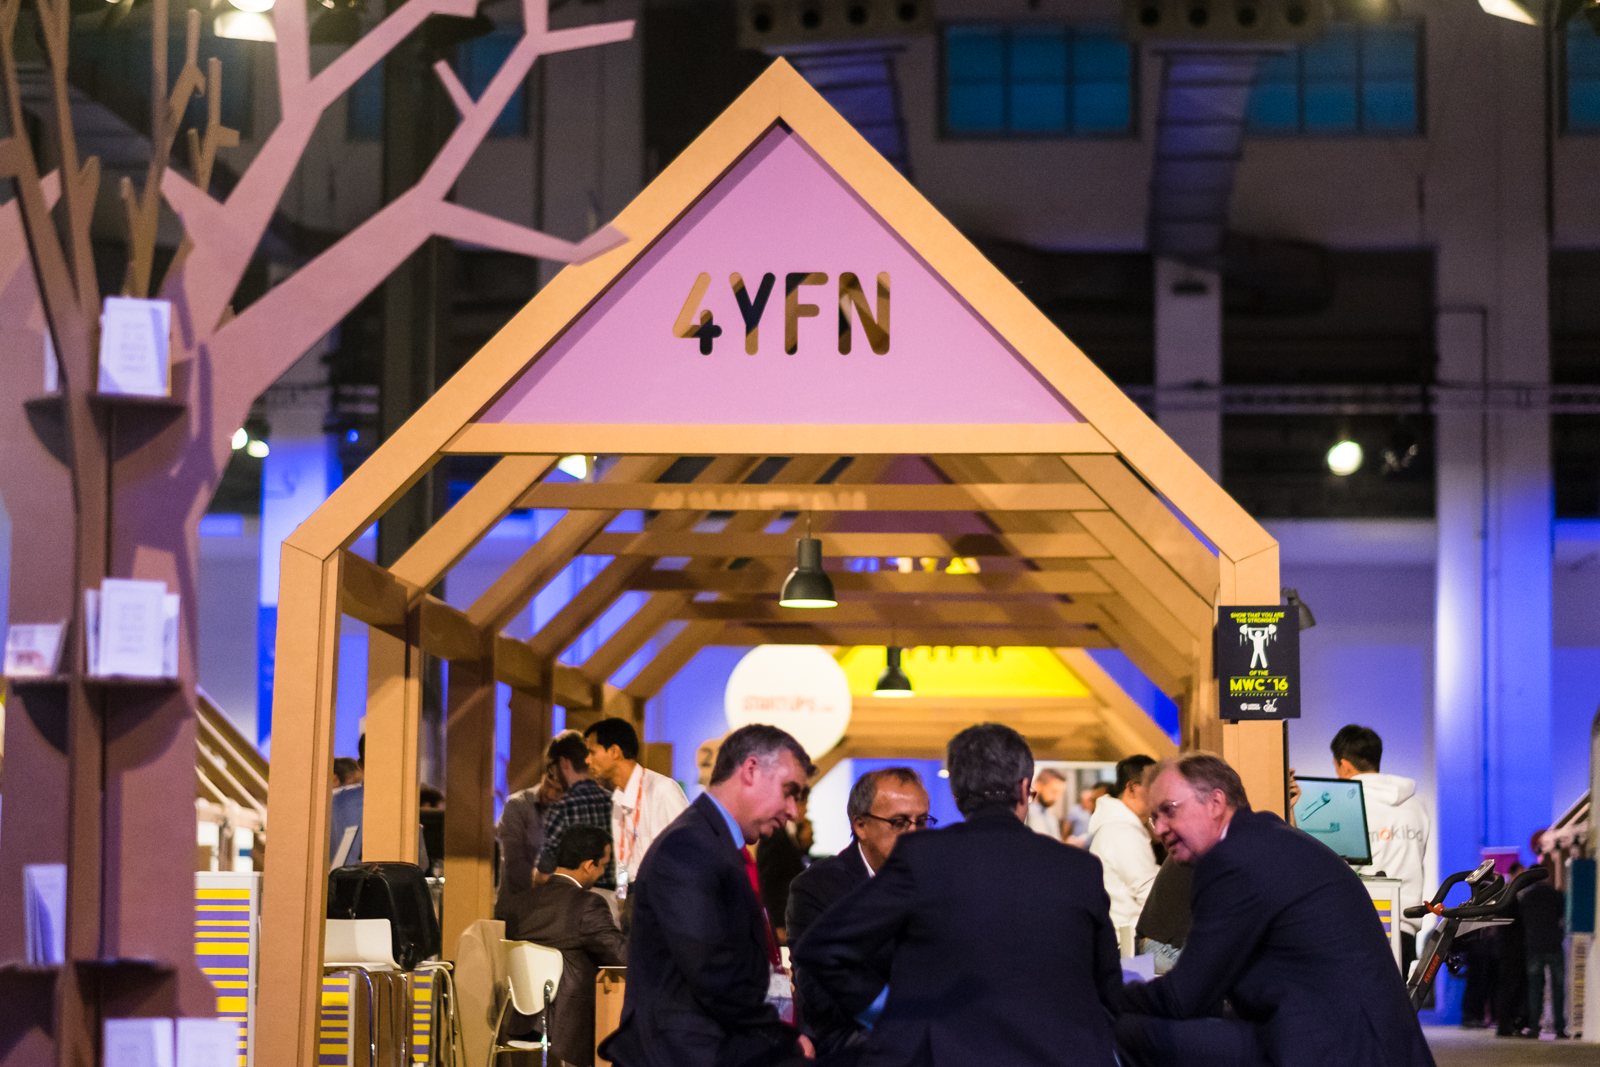 4YFN 2016 - Day 2 - Image ©Dan Taylor/Heisenberg Media For bookings contact - dan@heisenbergmedia.com or +447821755904